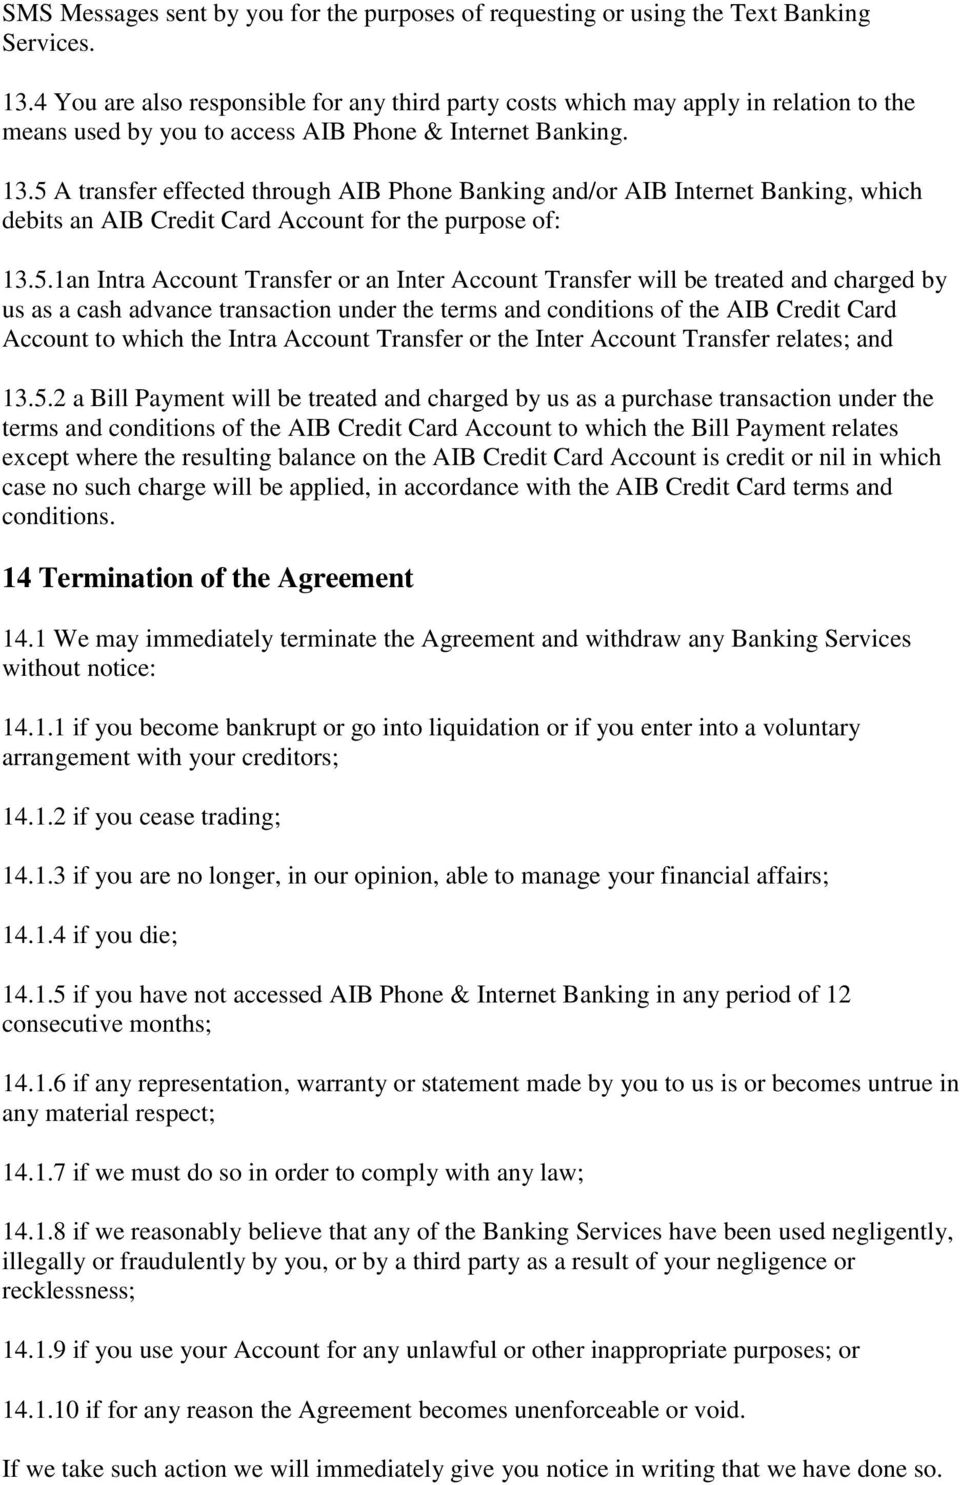 5 A transfer effected through AIB Phone Banking and/or AIB Internet Banking, which debits an AIB Credit Card Account for the purpose of: 13.5.1an Intra Account Transfer or an Inter Account Transfer